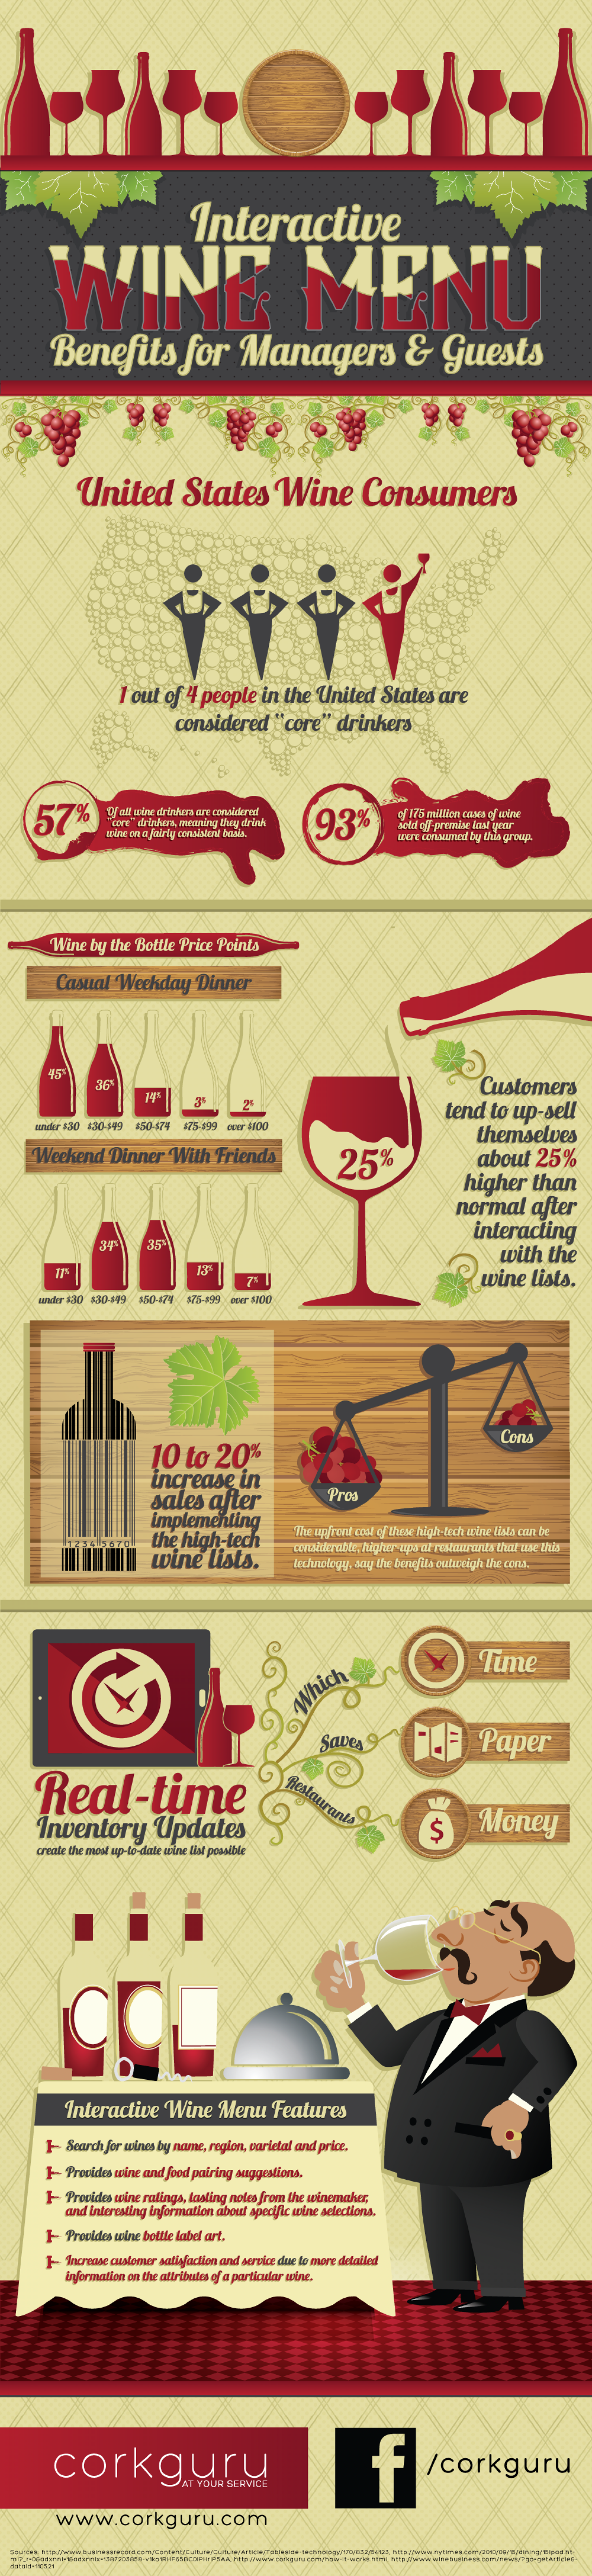 Interactive Wine Menu Benefits for Managers & Guests Infographic